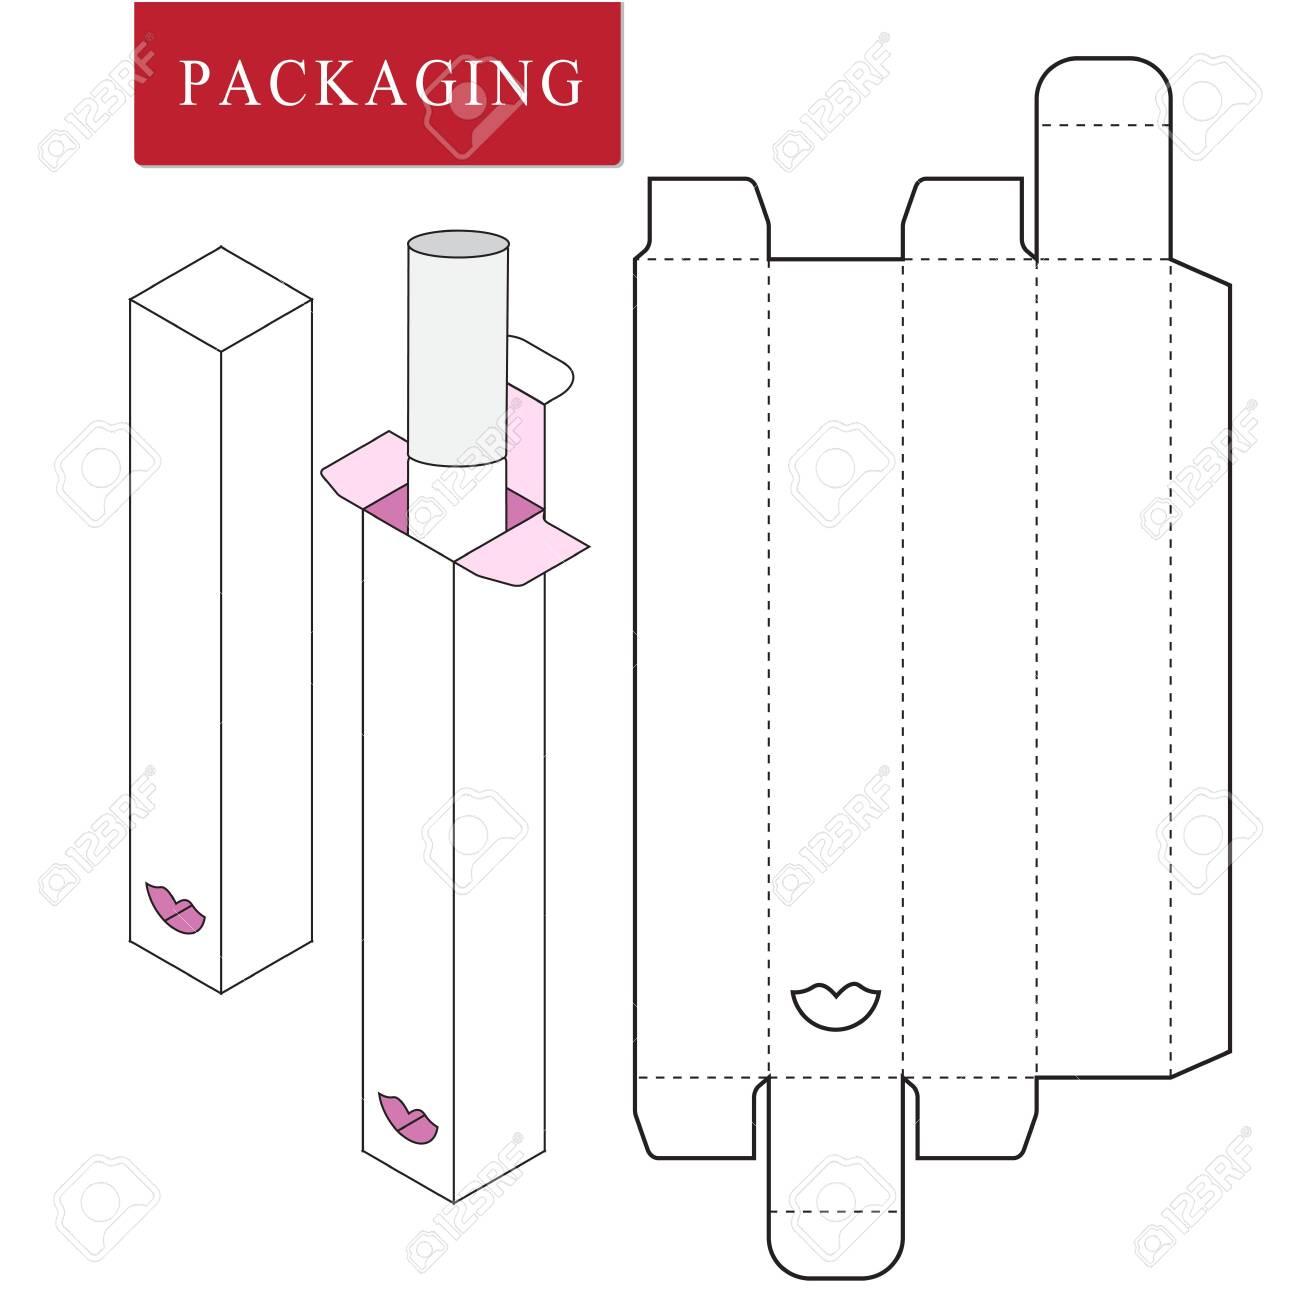 Package For Object Vector Illustration Of Box Package Template Royalty Free Cliparts Vectors And Stock Illustration Image 123945506